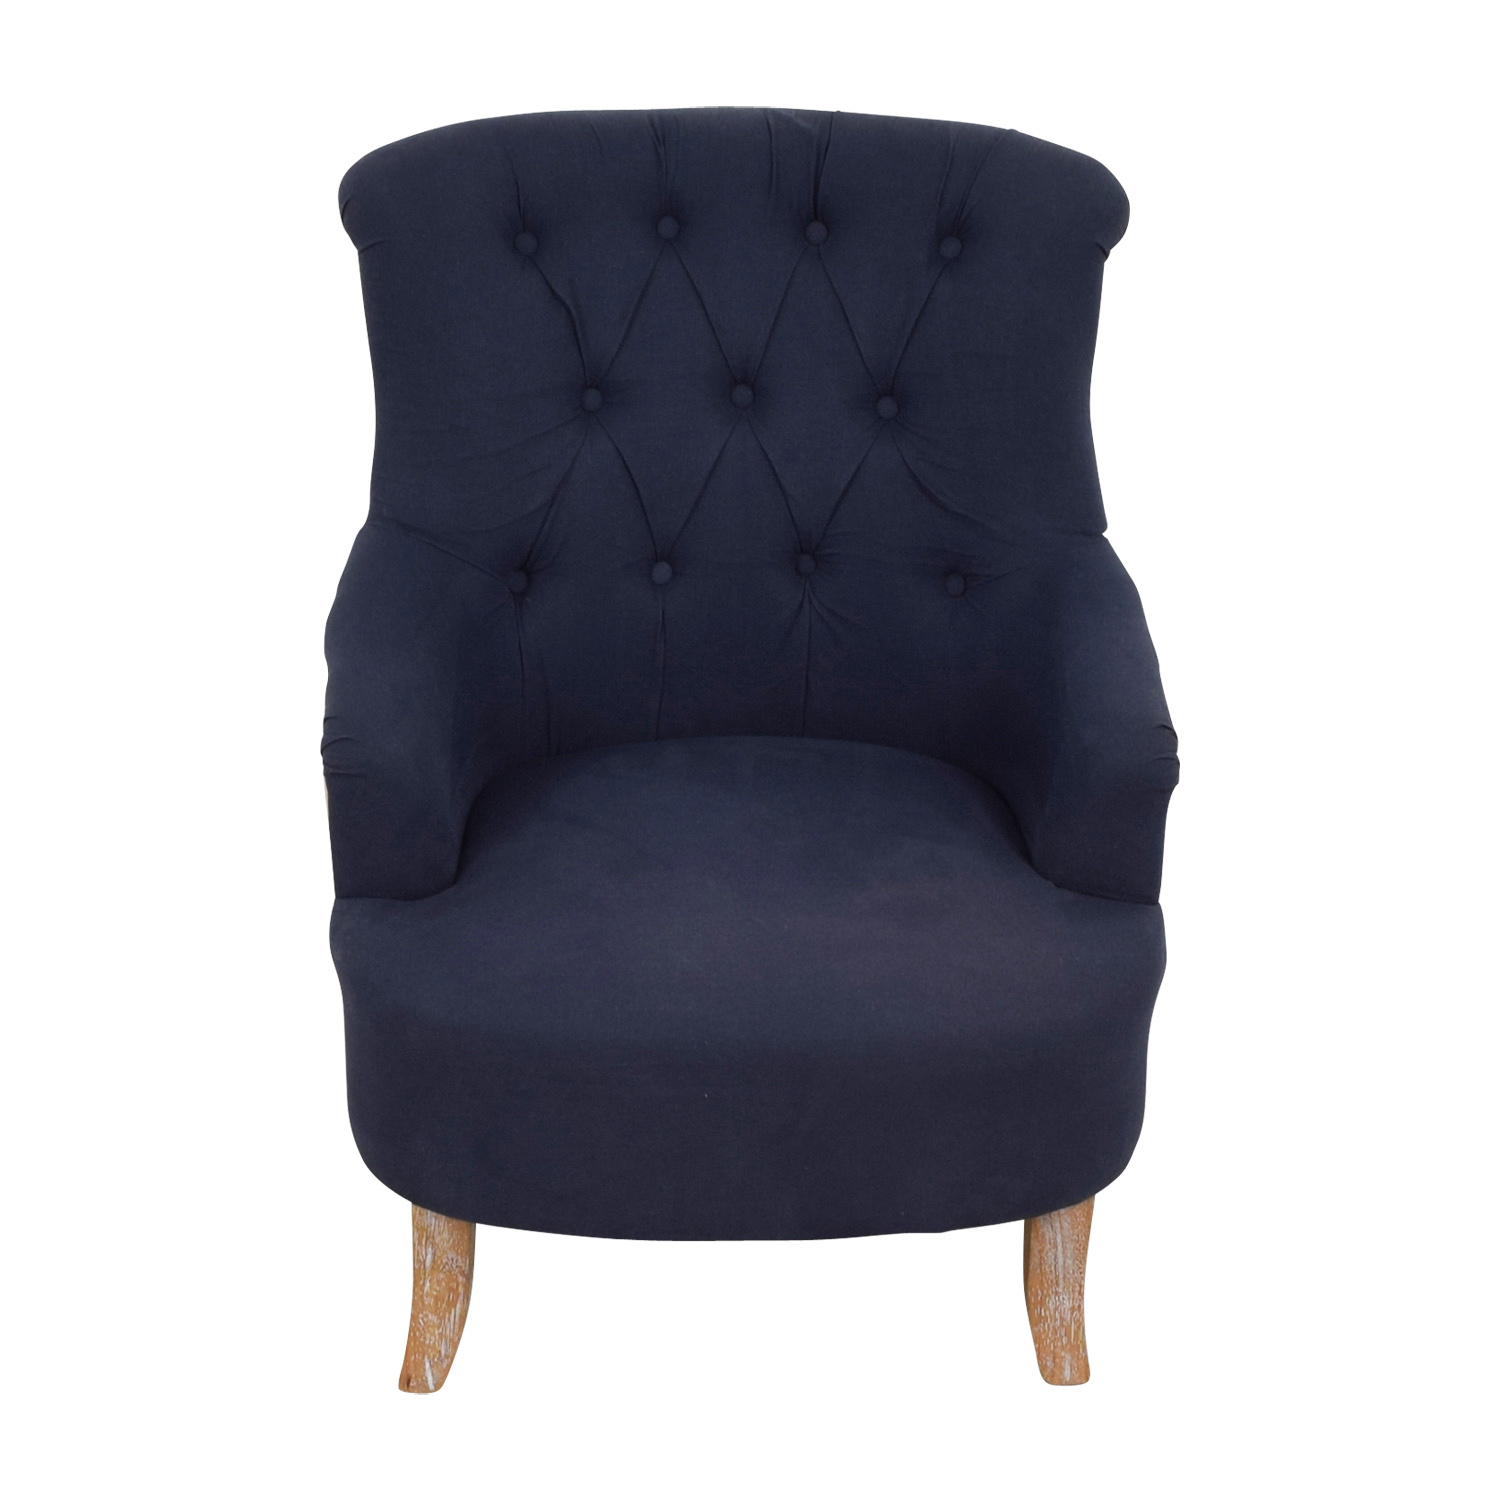 Sensational 61 Off Pier 1 Pier 1 Imports Blue And Tan Tufted Armchair Chairs Ibusinesslaw Wood Chair Design Ideas Ibusinesslaworg